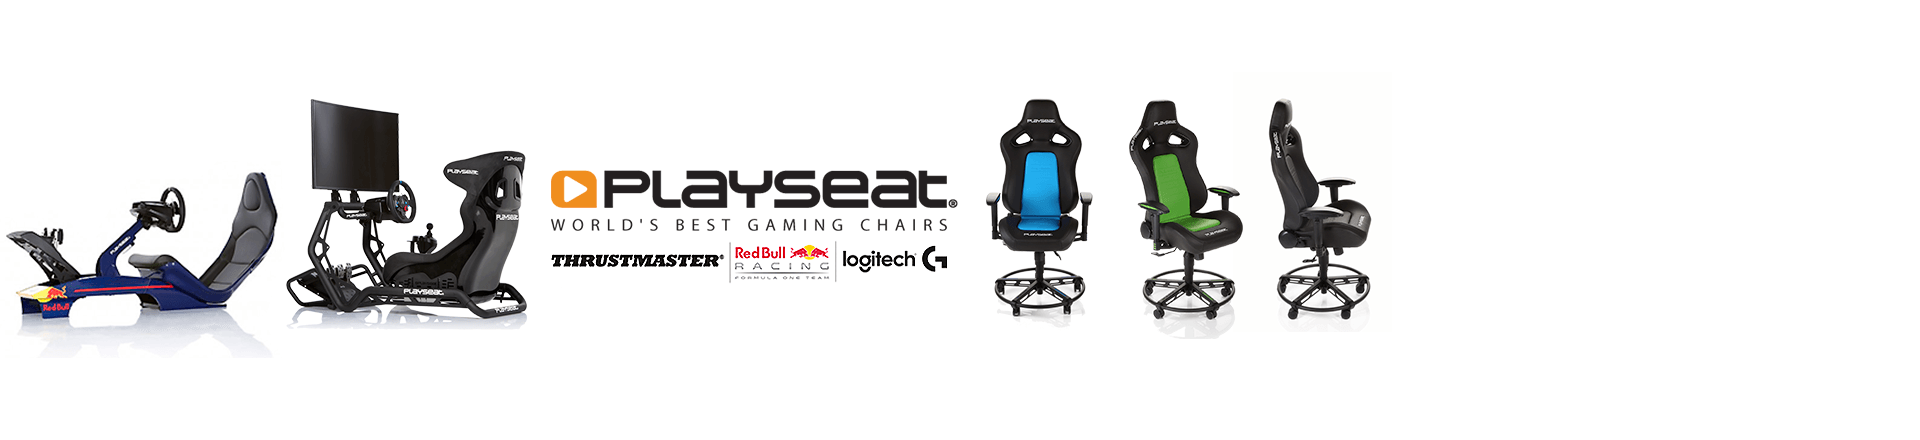 banner-playseat-2710-png